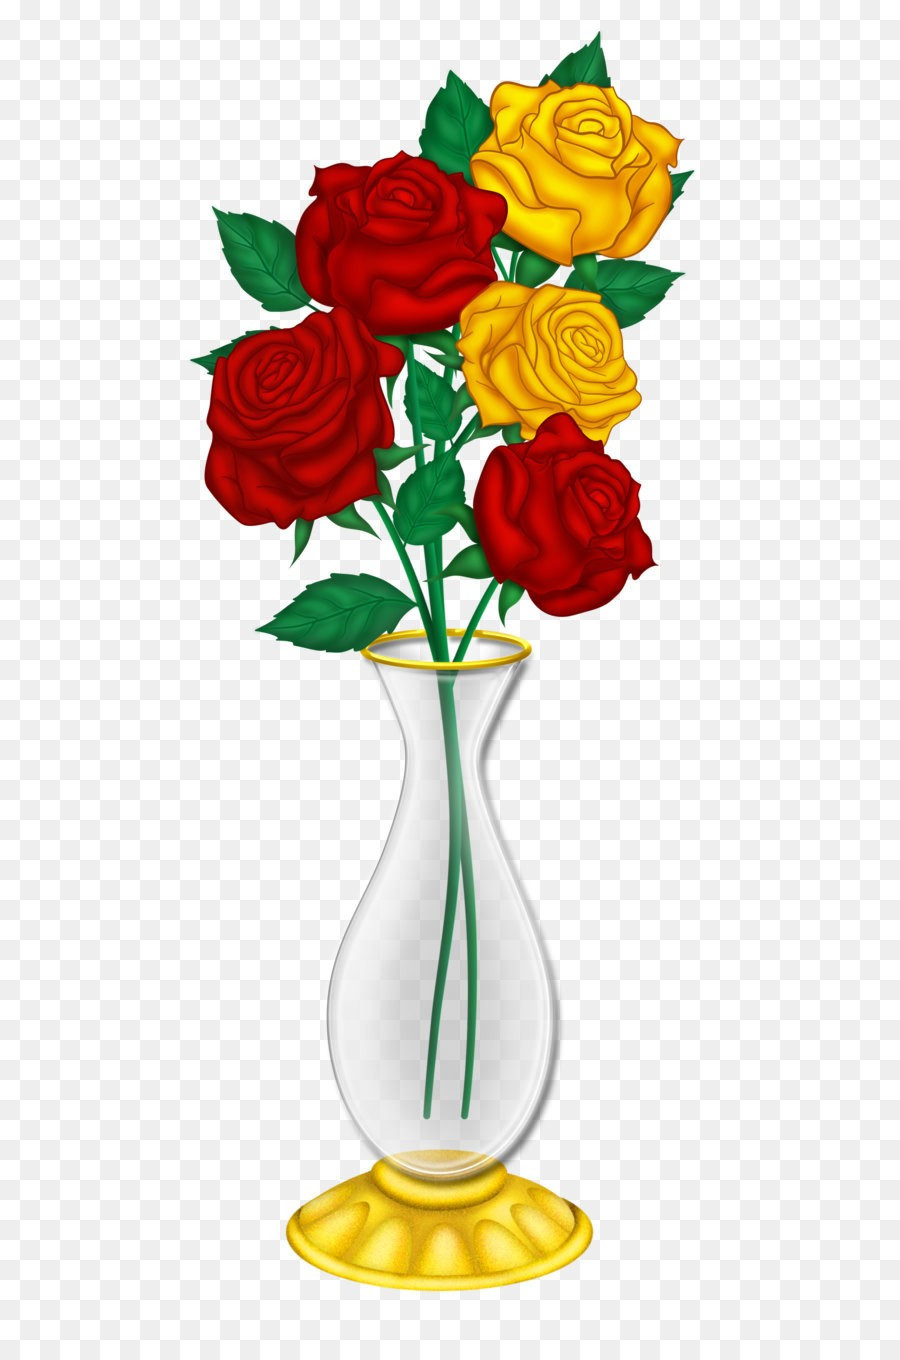 gold plated flower vases of will clipart colored flower vase clip arth vases art infoi 0d of for pertaining to beautiful vase with red and yellow roses png picture 5a1bad3e332a51 on clipart